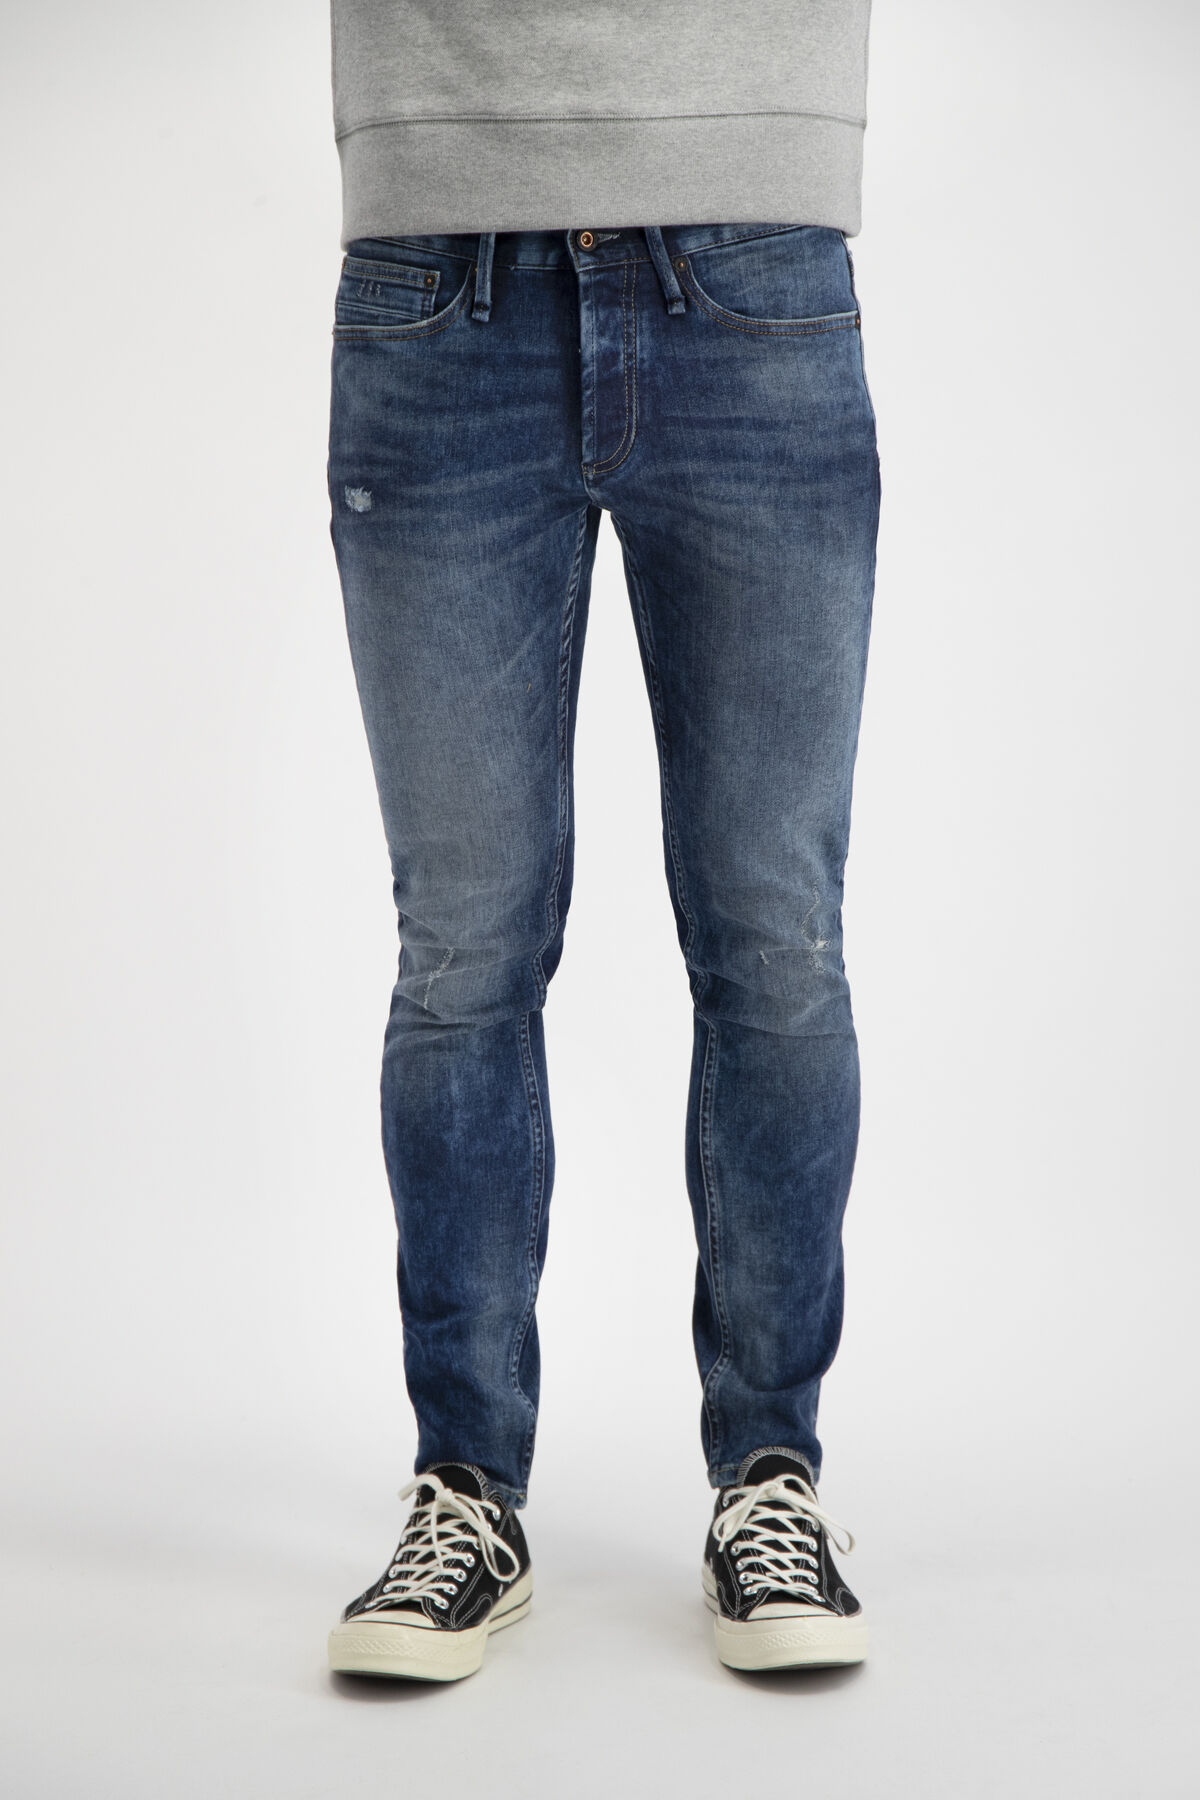 Bolt Skinny Fit Jeans - AB